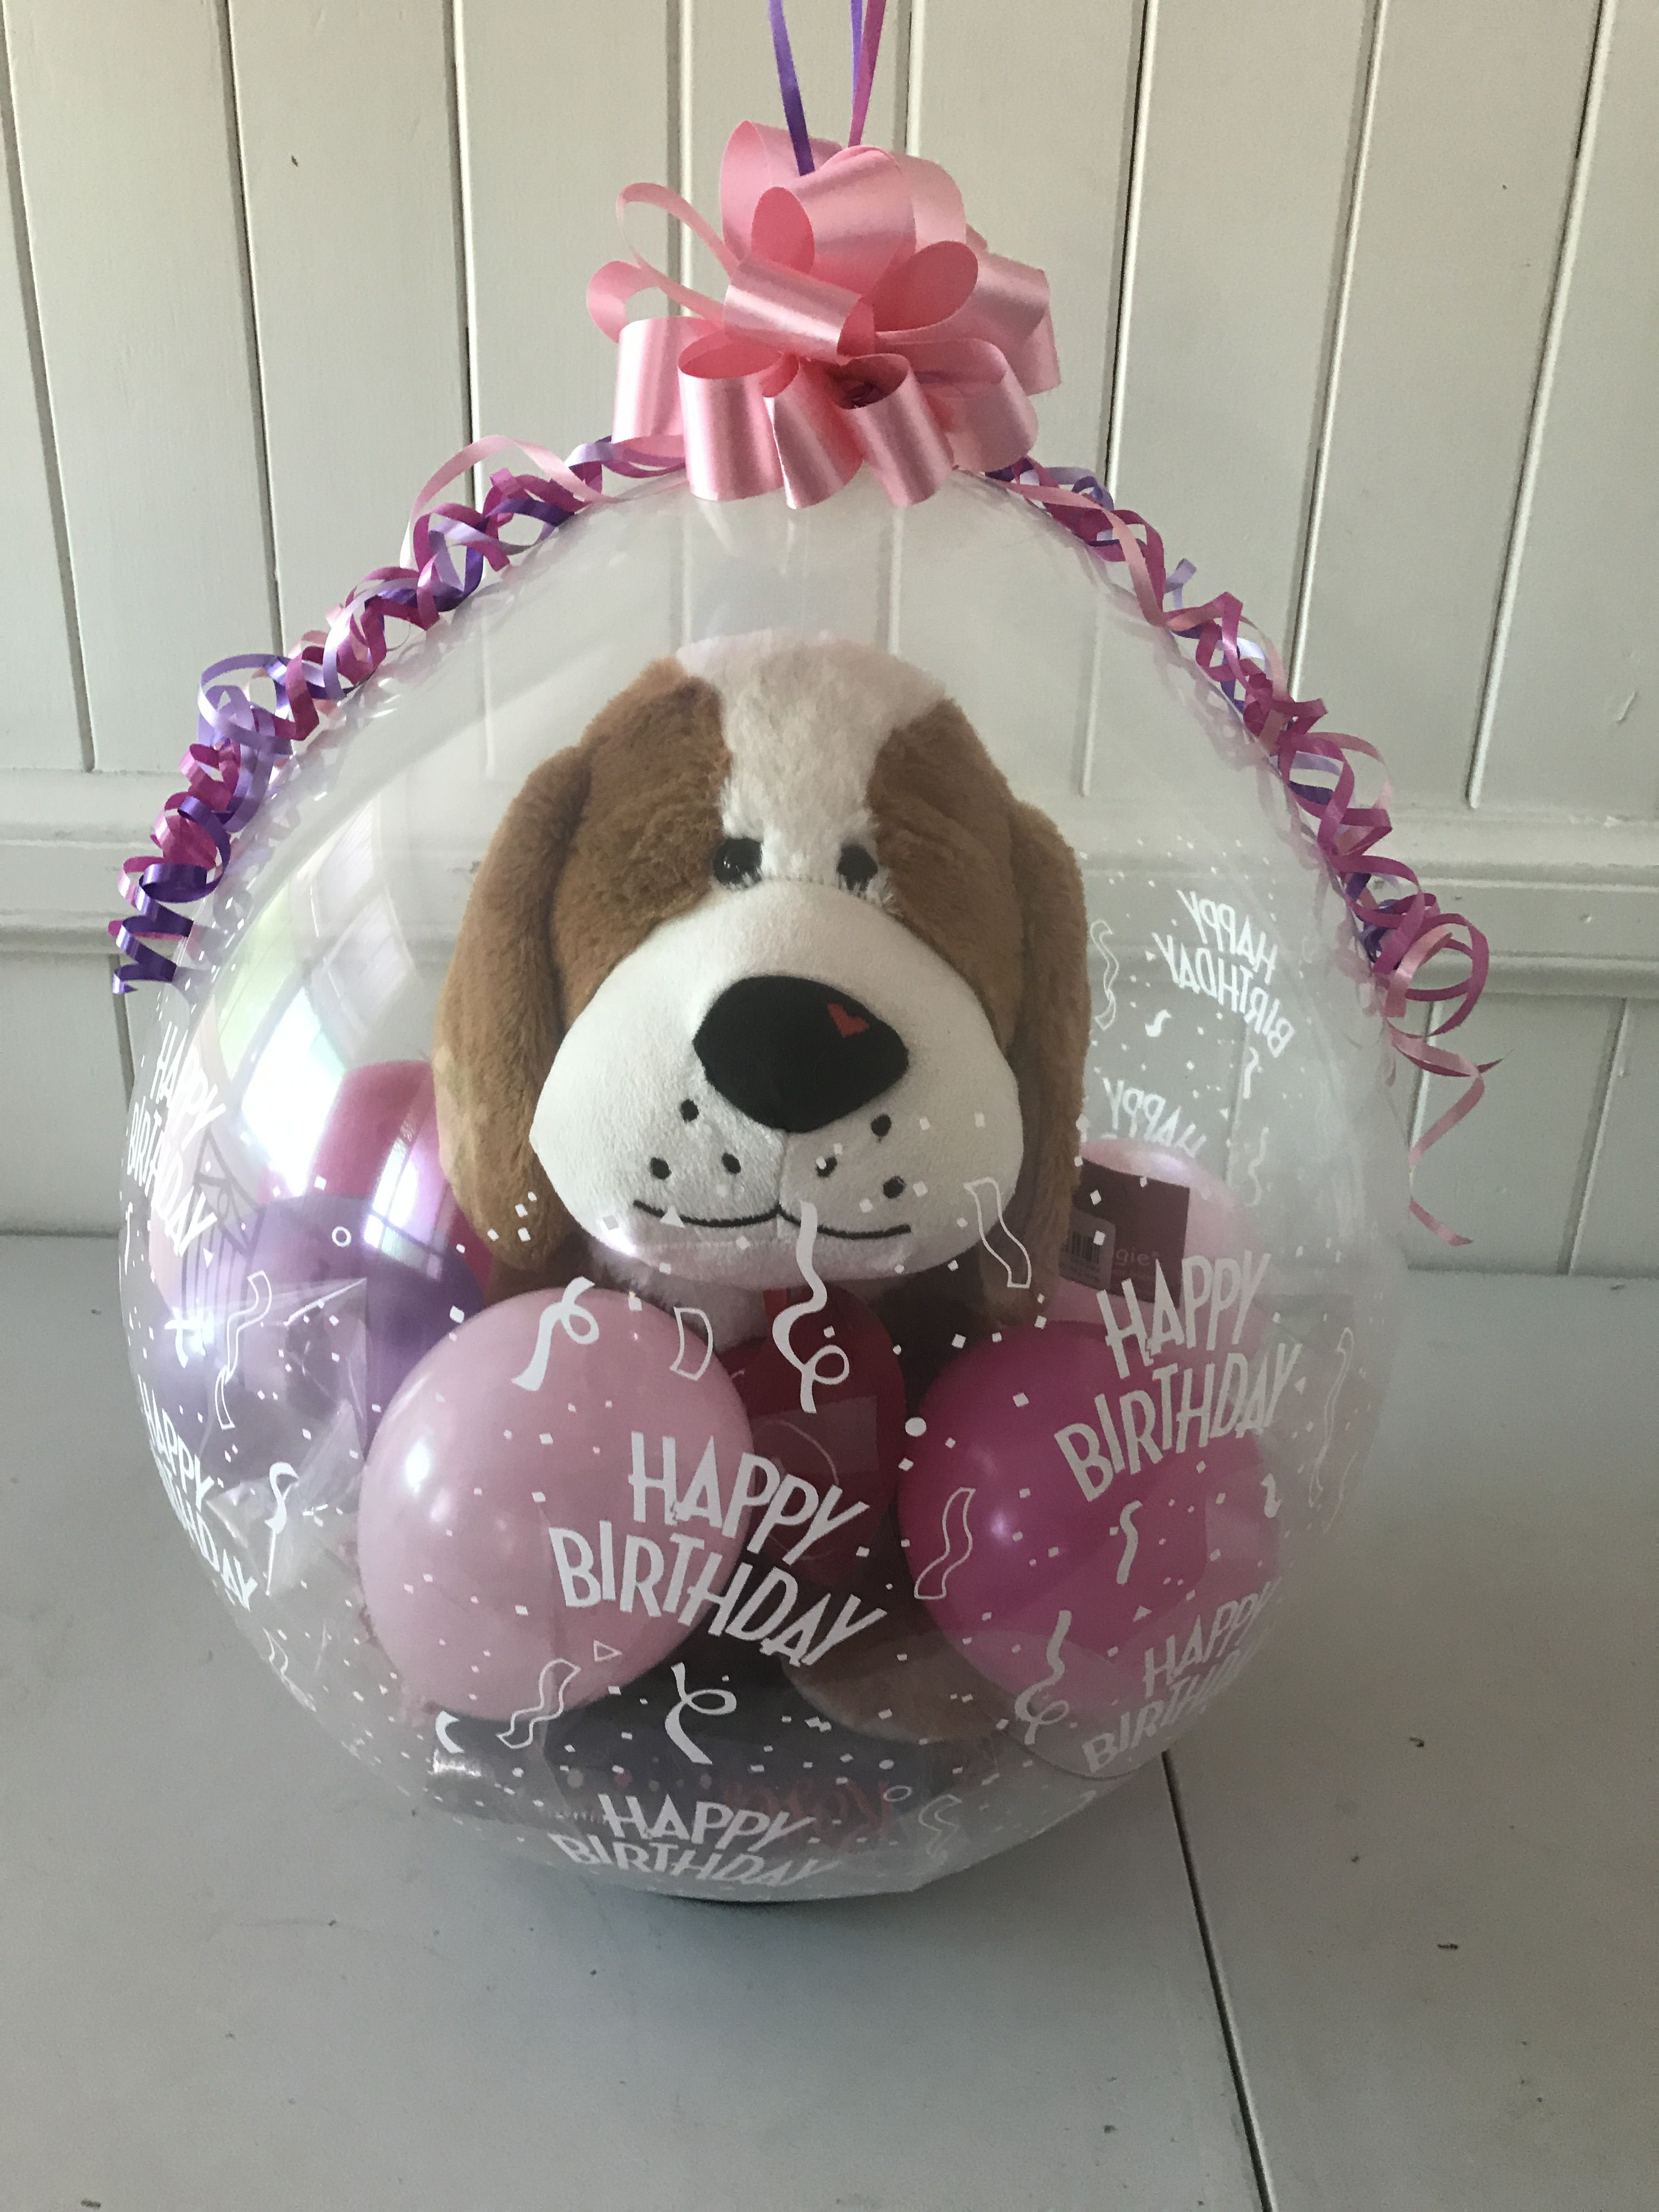 Stuffed Balloon Or Gift Inside A Large Plush Dog With Box Of Chocolates